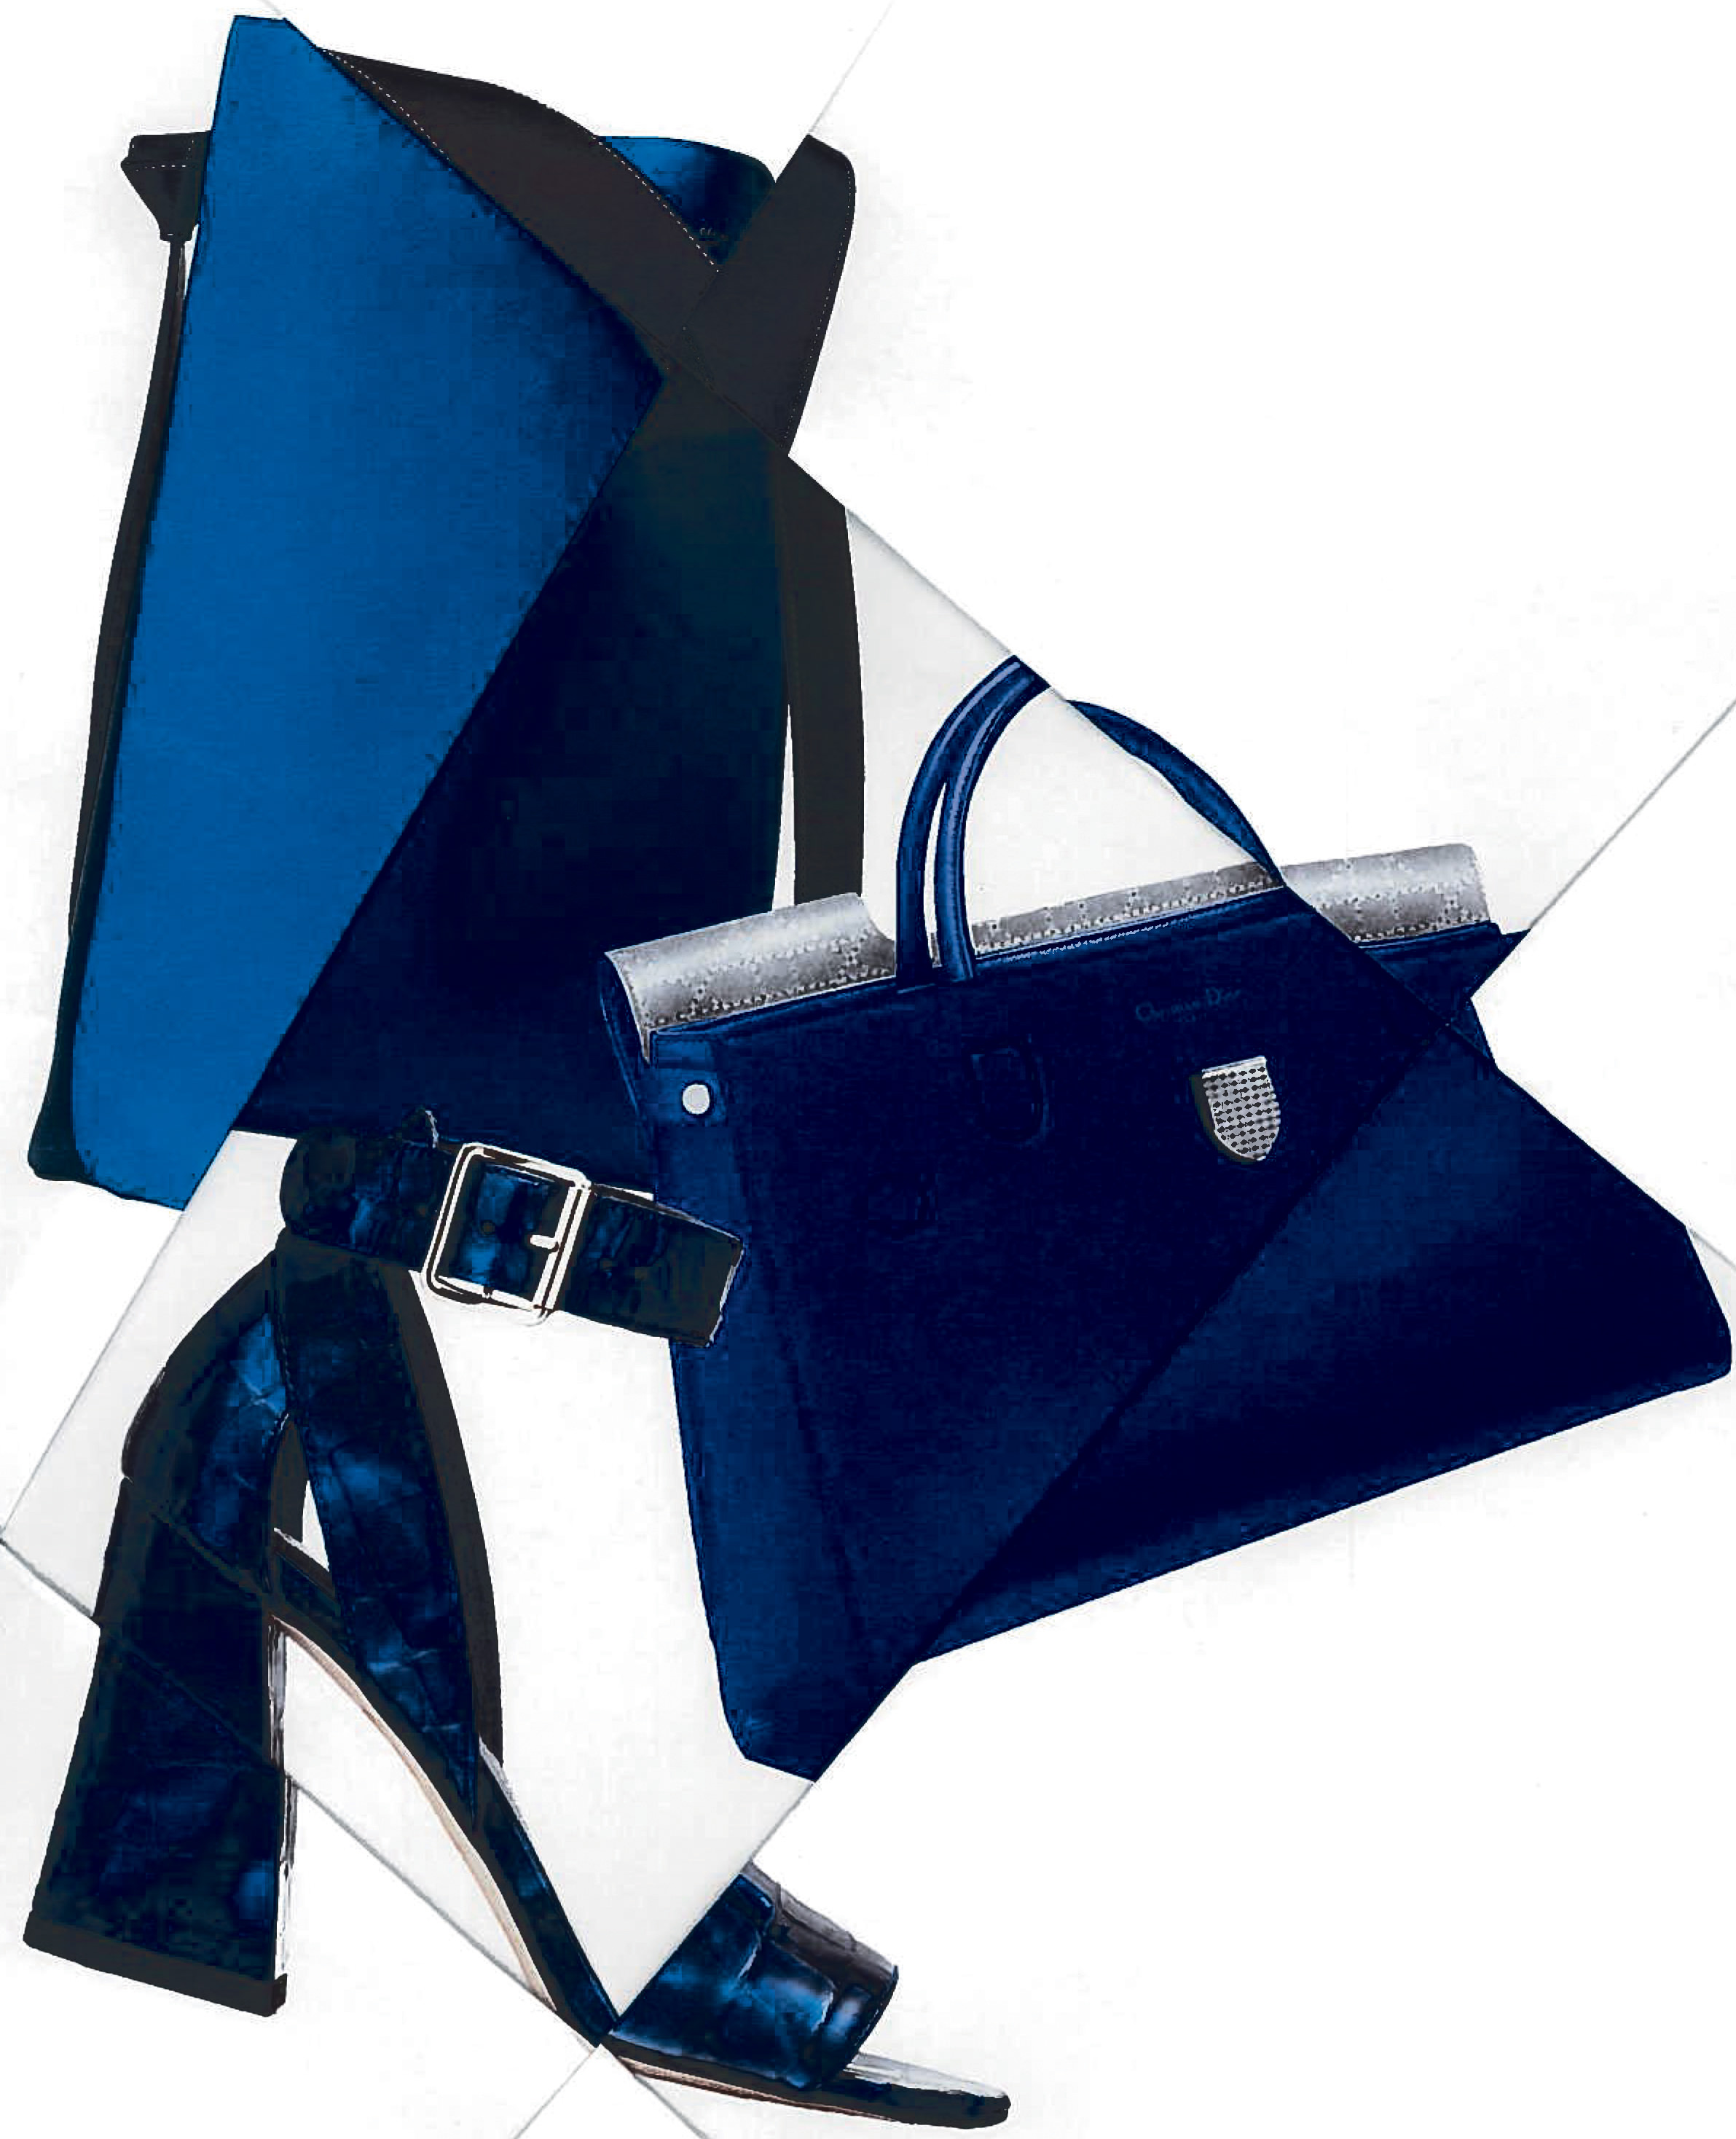 Céline, Christian Dior and Stuart Weitzman's blue accessories